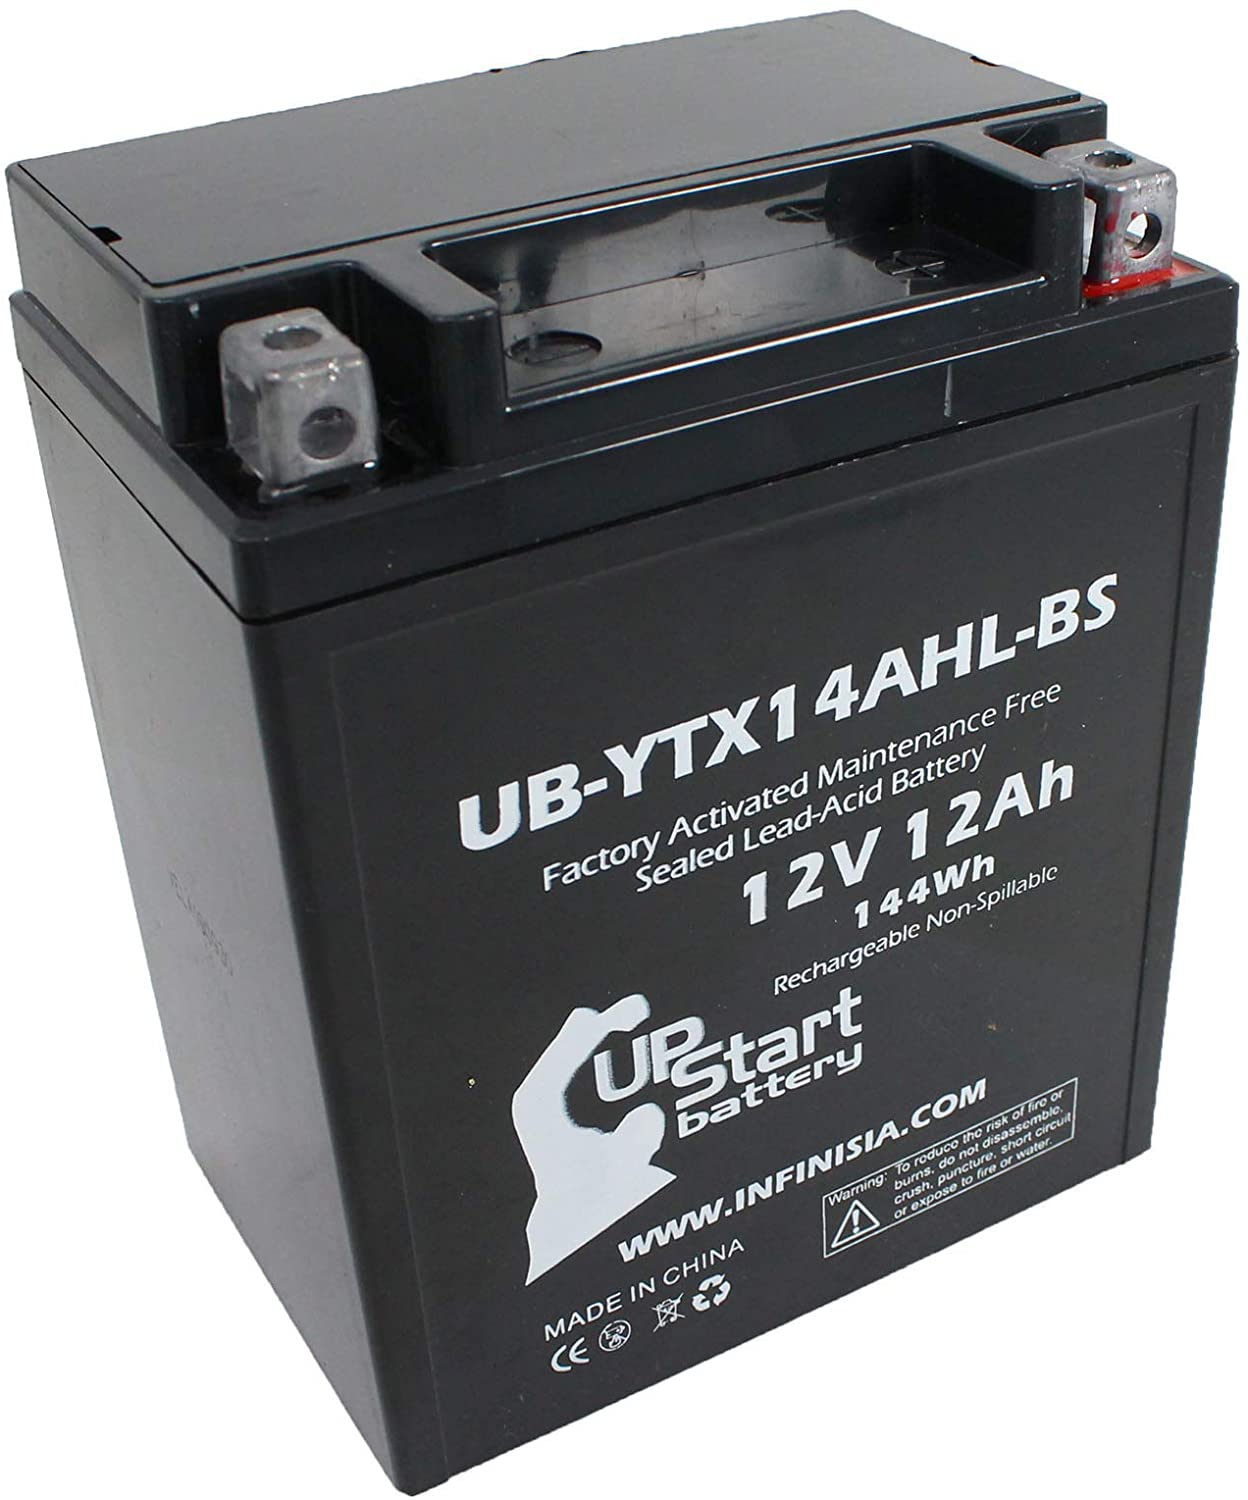 Replacement for YTX14AHL-BS Battery 12V 12AH SLA - Compatible with 1978 Yamaha Xs650, 1979 Suzuki Gs1000, 1979 Yamaha Xs650, 1980 Yamaha Xs650, 1981 Yamaha Xs650, 1978 Suzuki Gs1000, 1975 Yamaha Xs650